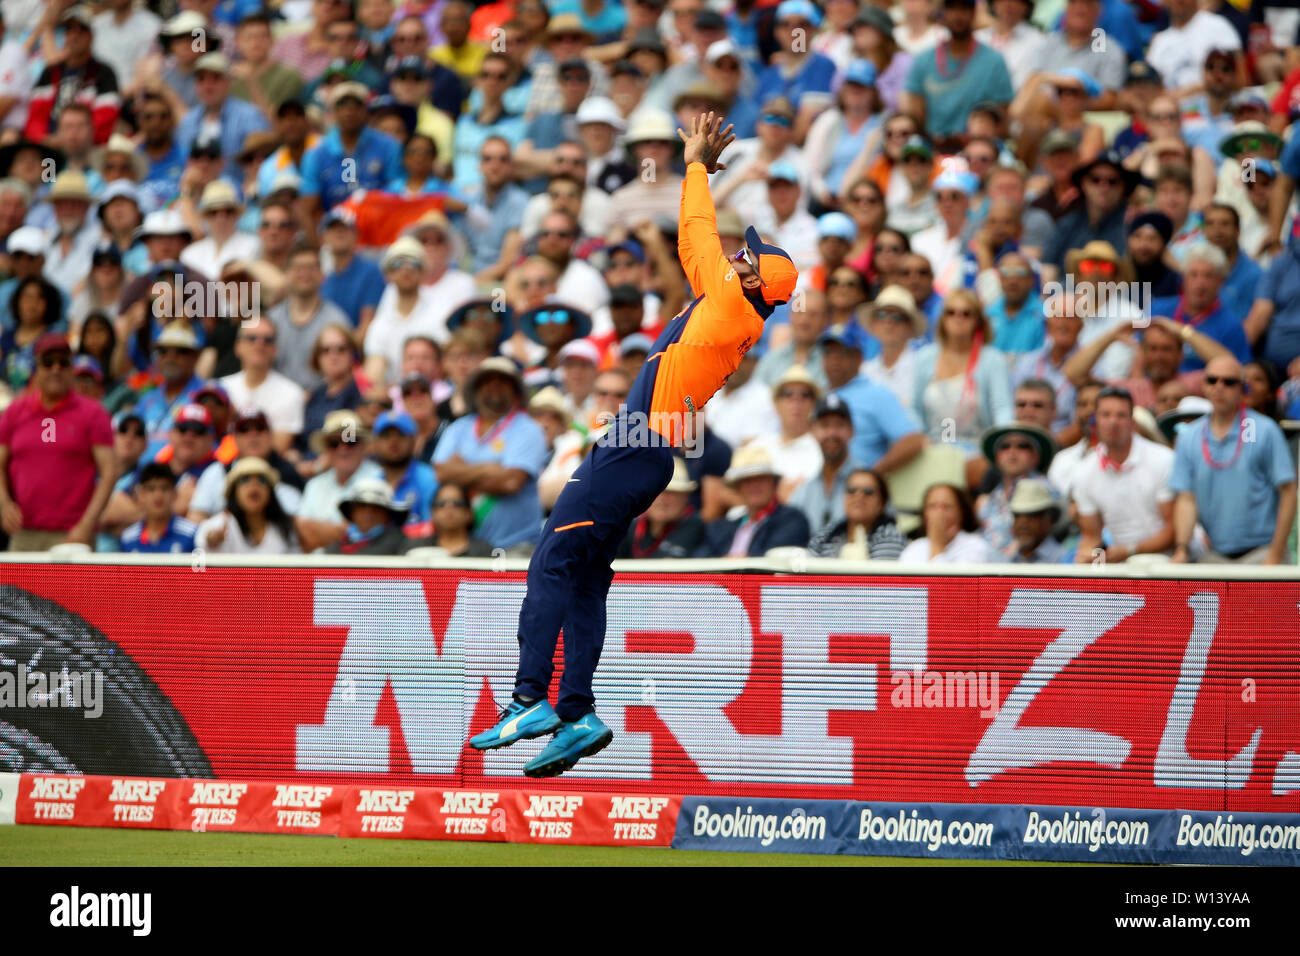 India's KL Rahul attempts a catch which causes him an injury during the ICC Cricket World Cup group stage match at Edgbaston, Birmingham. - Stock Image